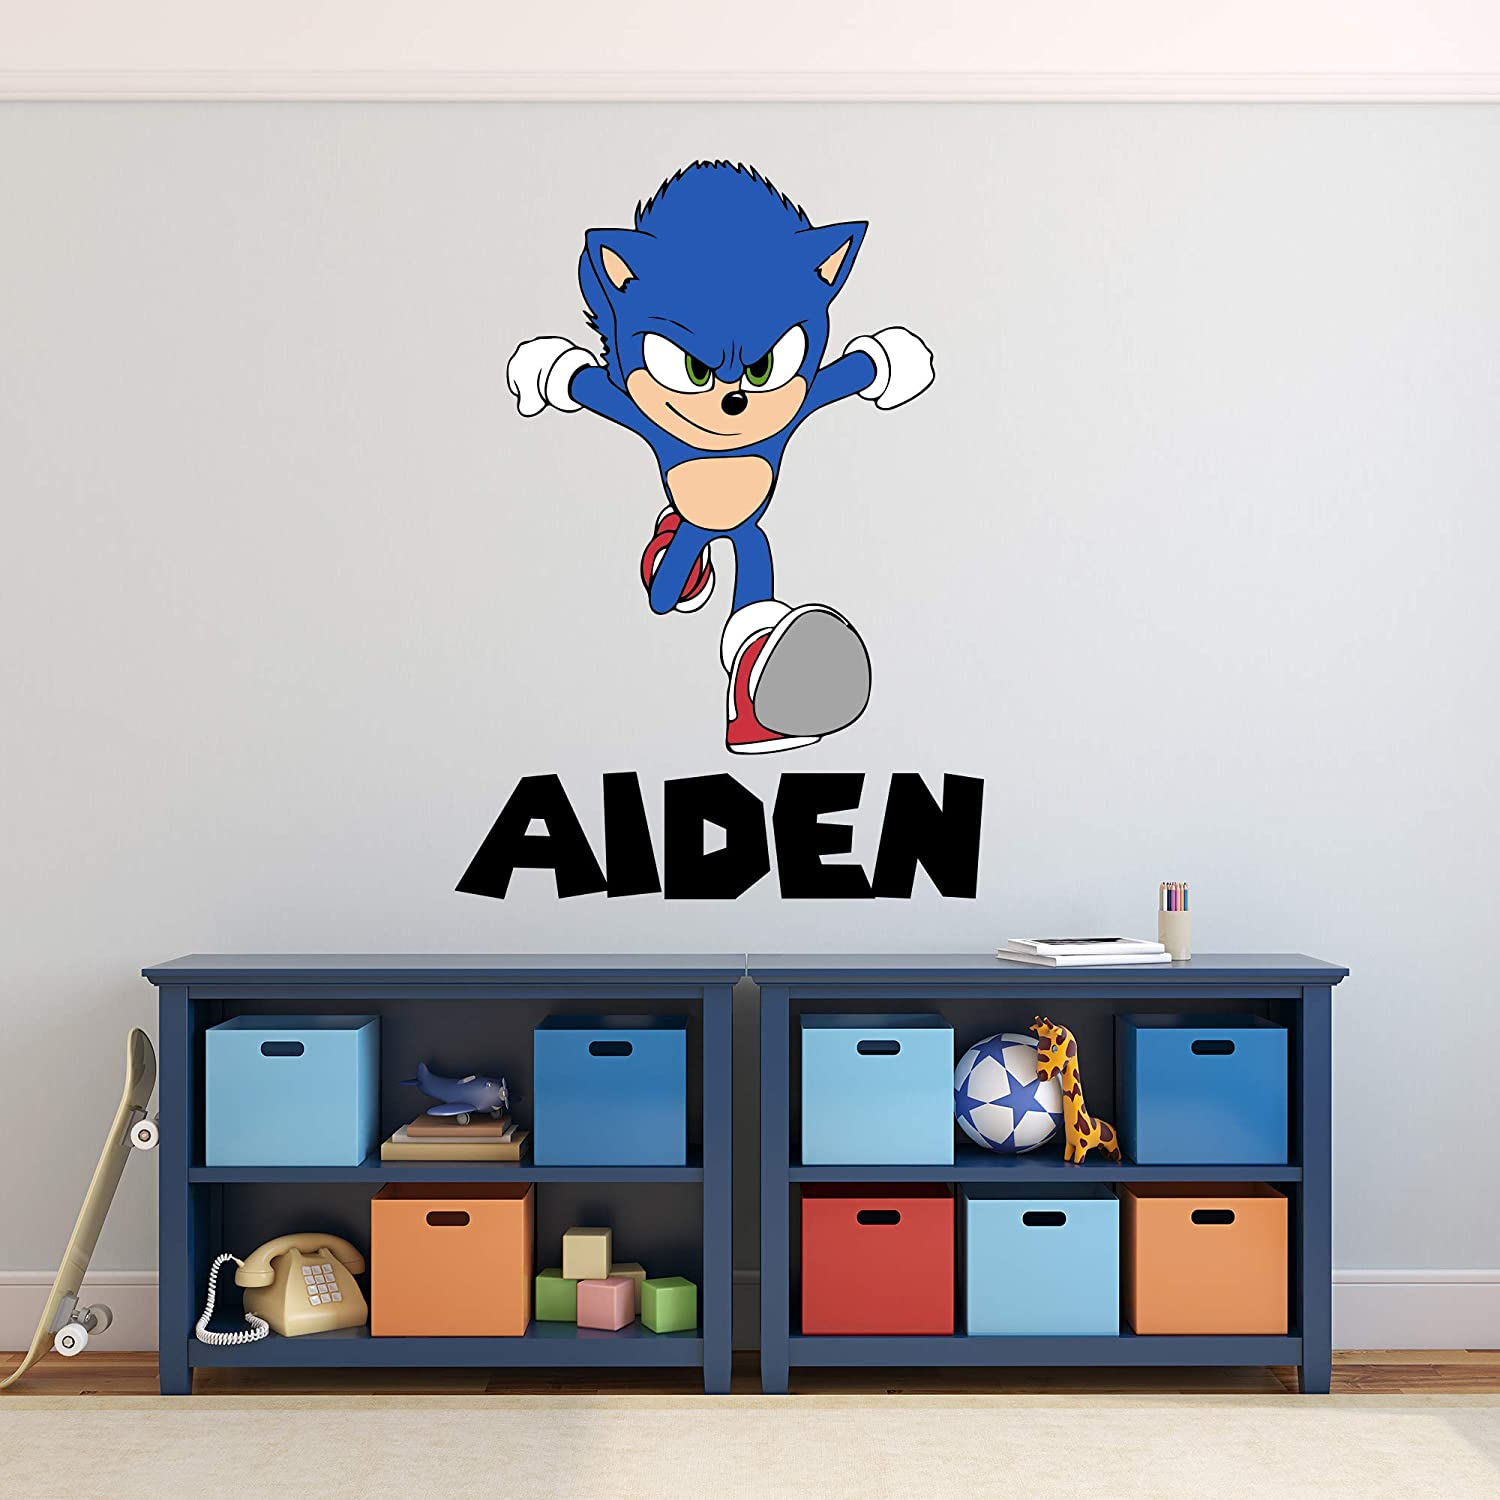 """Custom Name Wall Decal Adventure Sonic Wall Art Boys Kids Room Bedroom Decor Mural Decal Gift Custom Hedgehog Game Wall Decor Removable Vinyl Wall Stickers for Kids (20""""H x 14""""W inches)"""